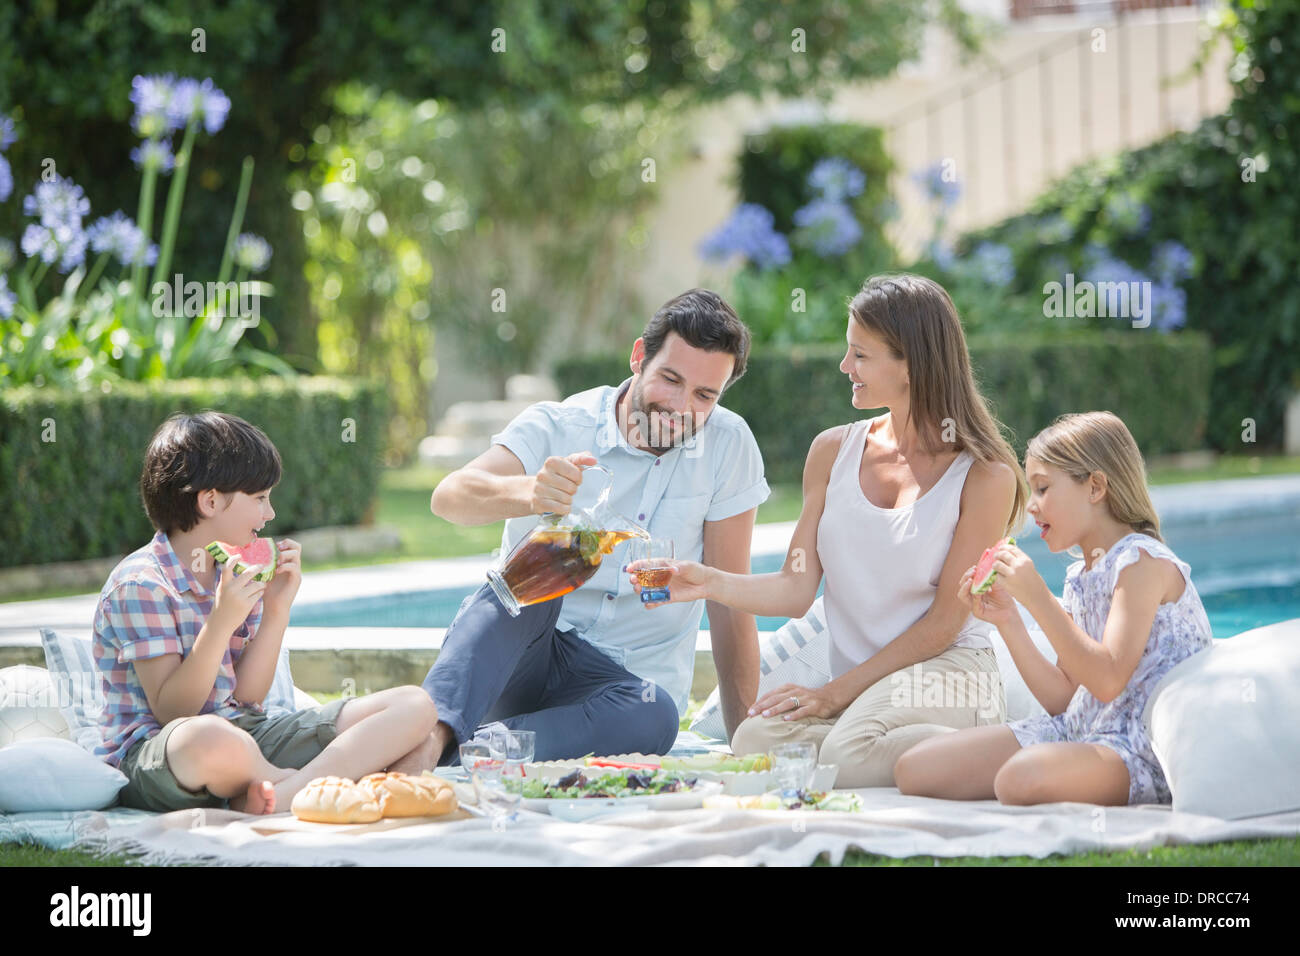 Family enjoying picnic at poolside - Stock Image